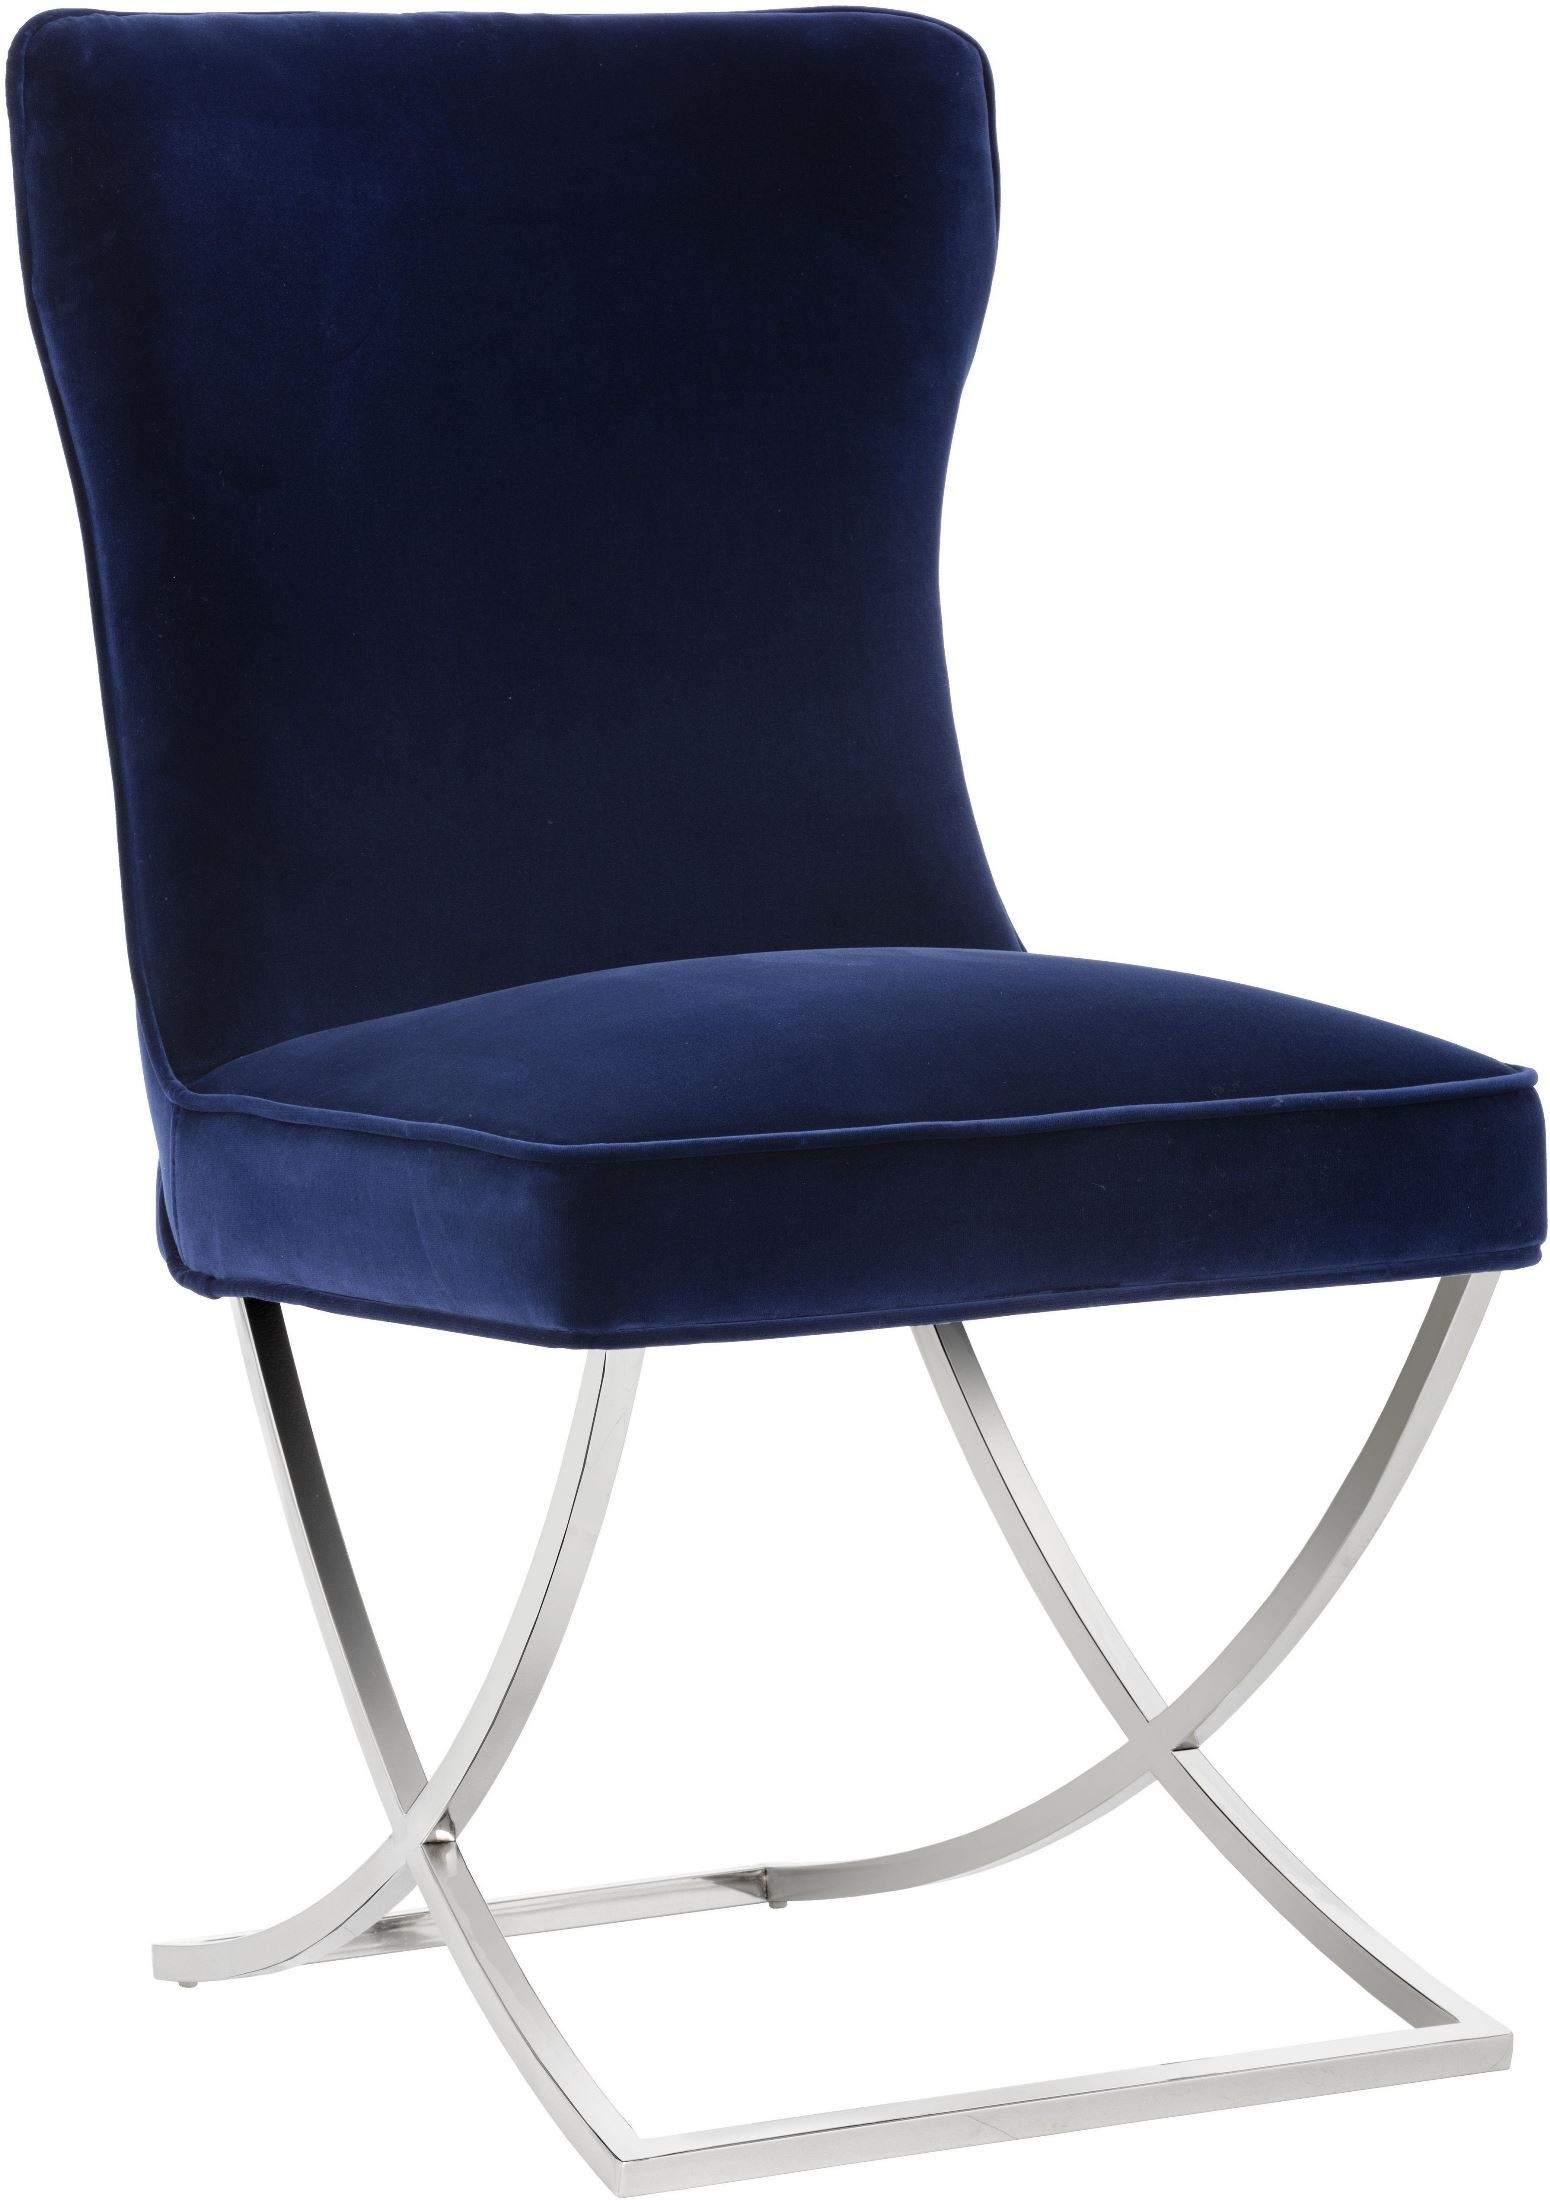 Navy Upholstered Chair Rivoli Giotto Navy Upholstered Dining Chair Set Of 2 From